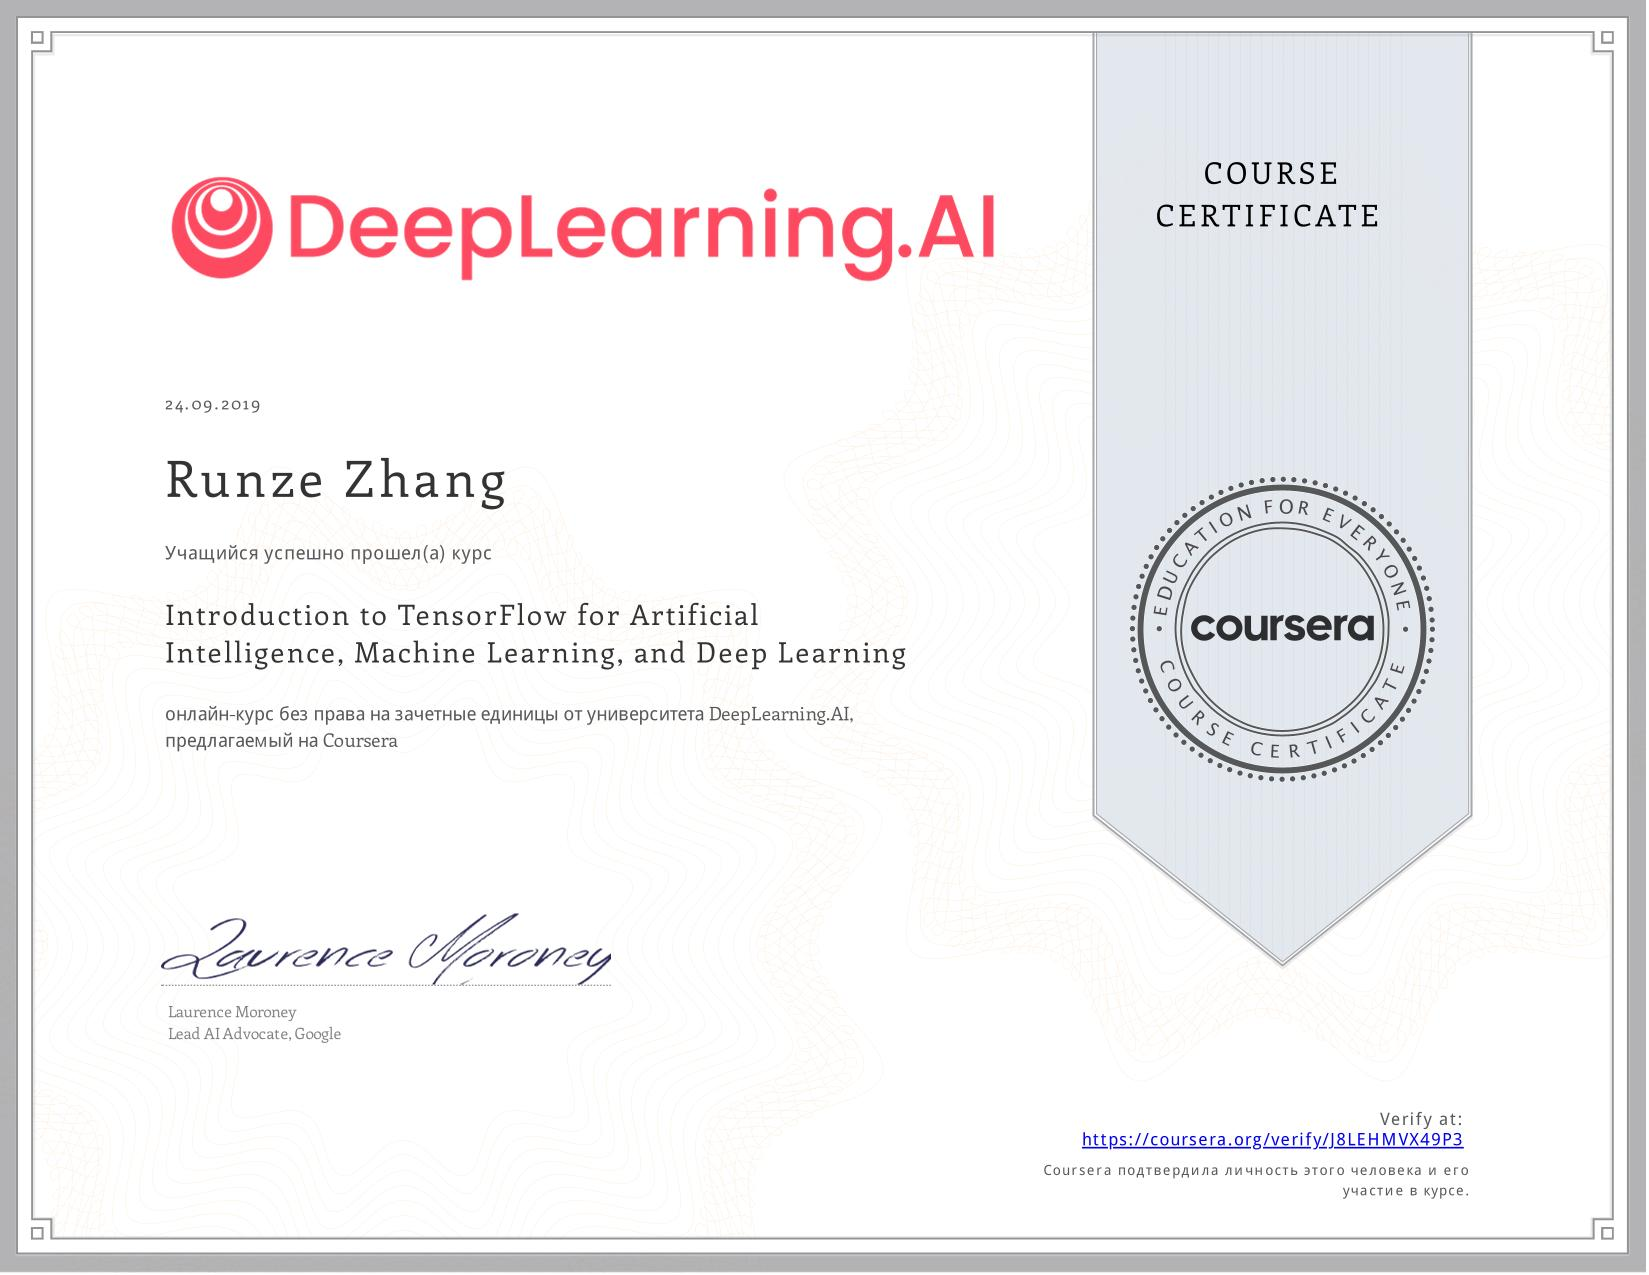 View certificate for Runze Zhang, Introduction to TensorFlow for Artificial Intelligence, Machine Learning, and Deep Learning, an online non-credit course authorized by  & deeplearning.ai and offered through Coursera